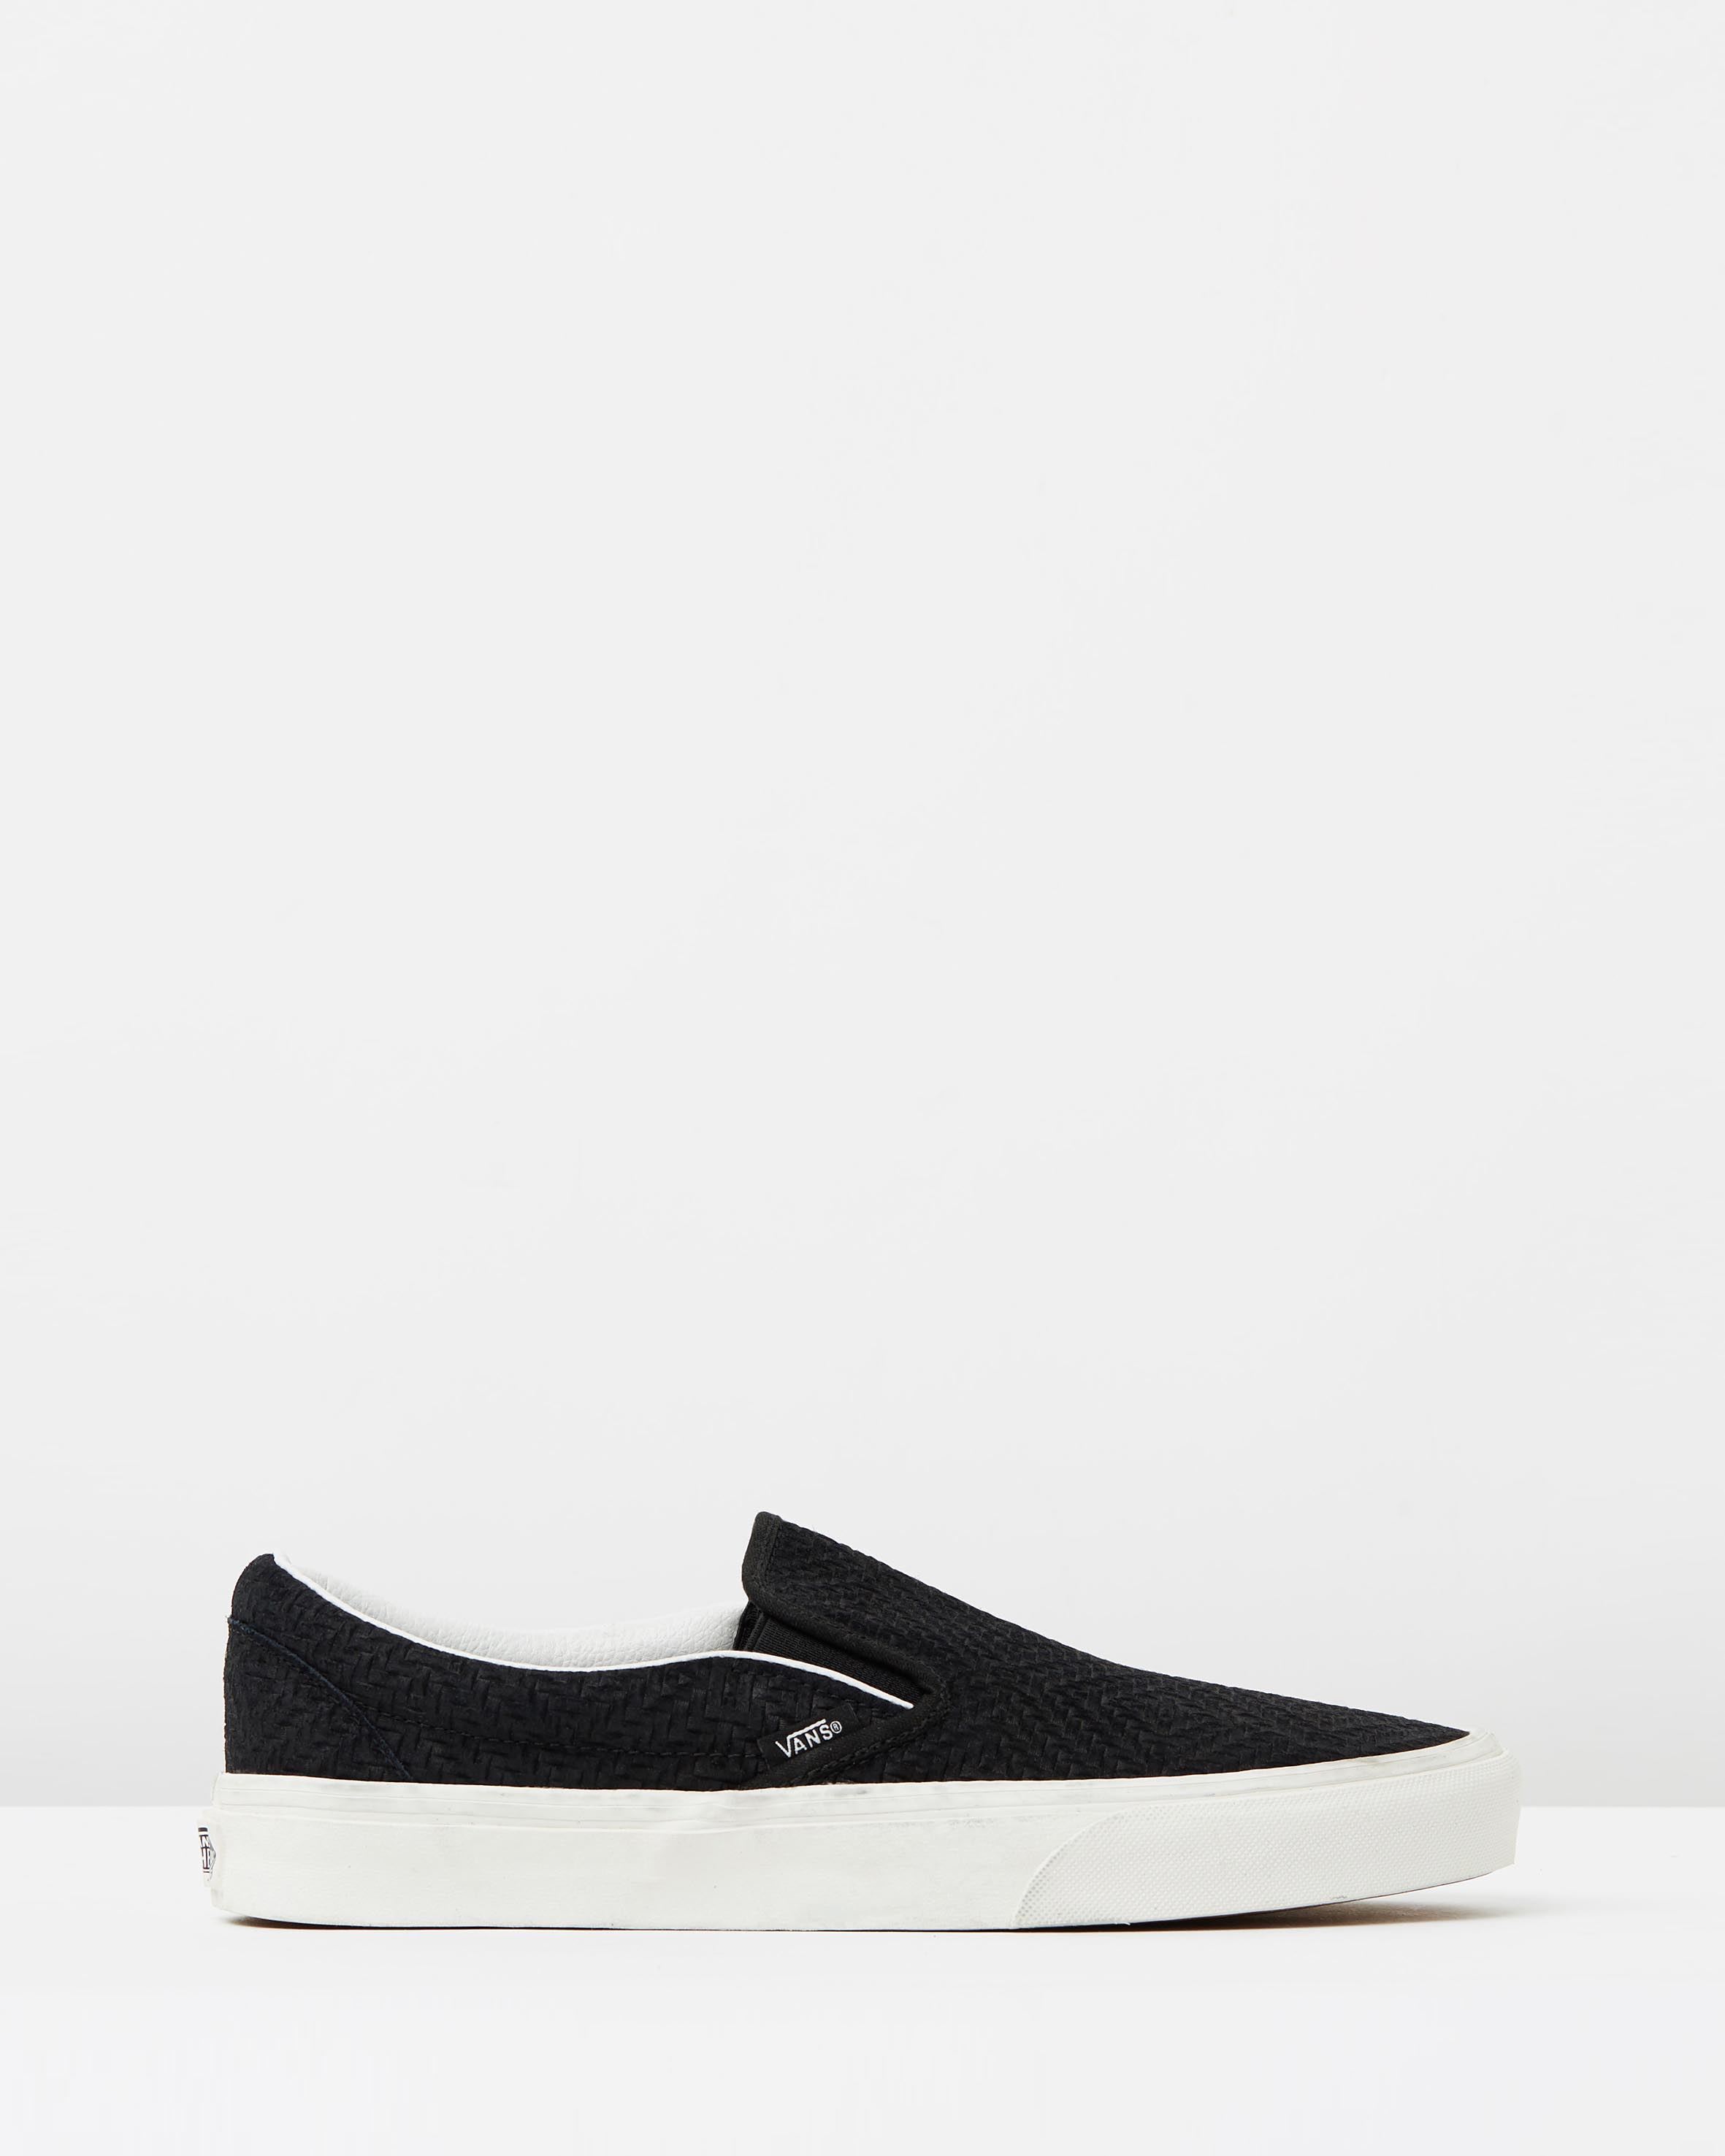 df1a781e84 Vans Womens Classic Slip On Black Suede Trainers 1 ...